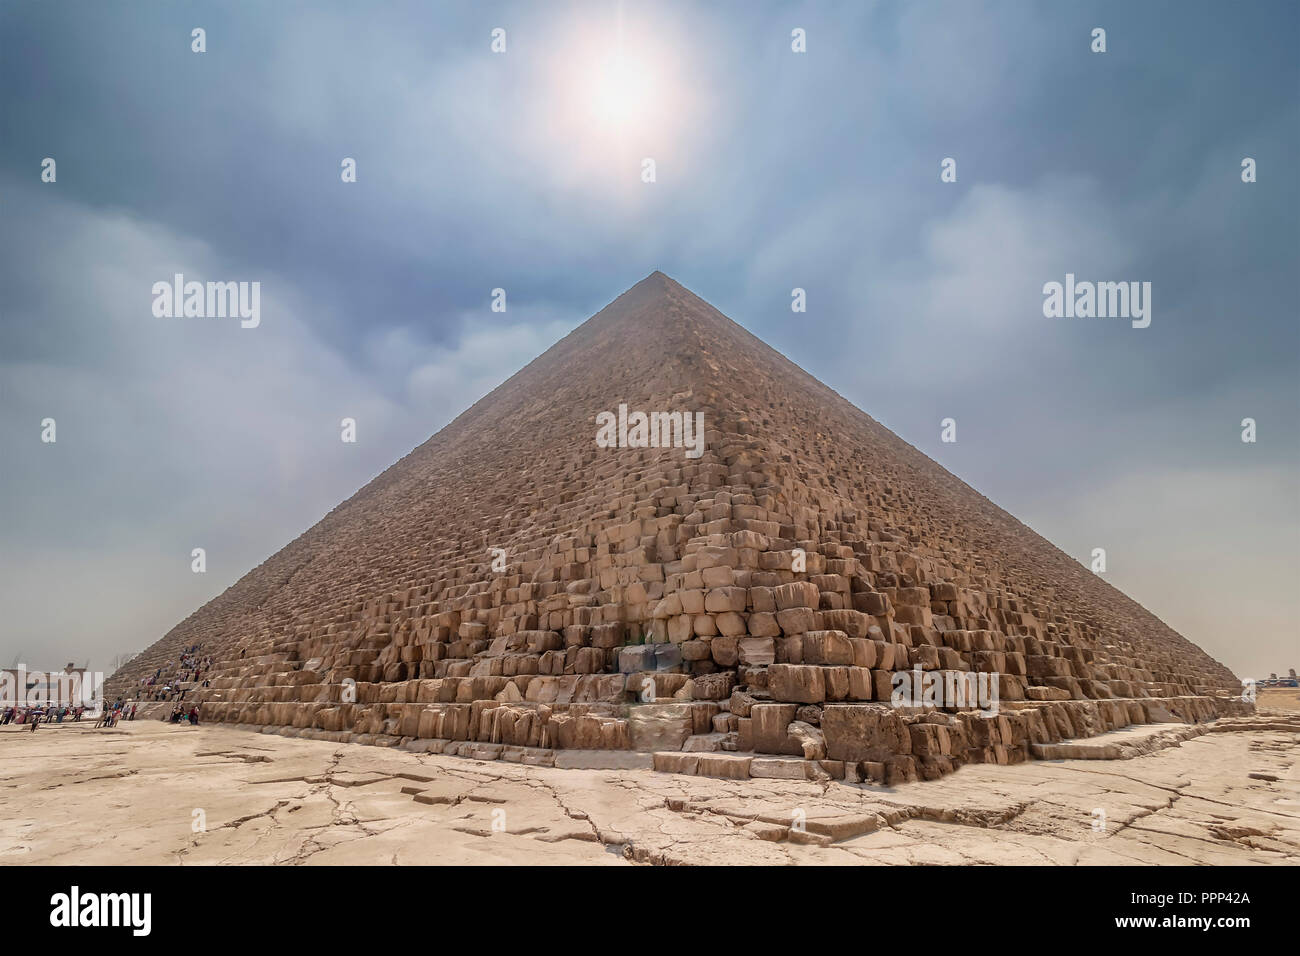 The Pyramid of Cheops illuminated by the sun in backlight, with people entering inside to visit it. The area with the great pyramids of Giza, Egypt - Stock Image